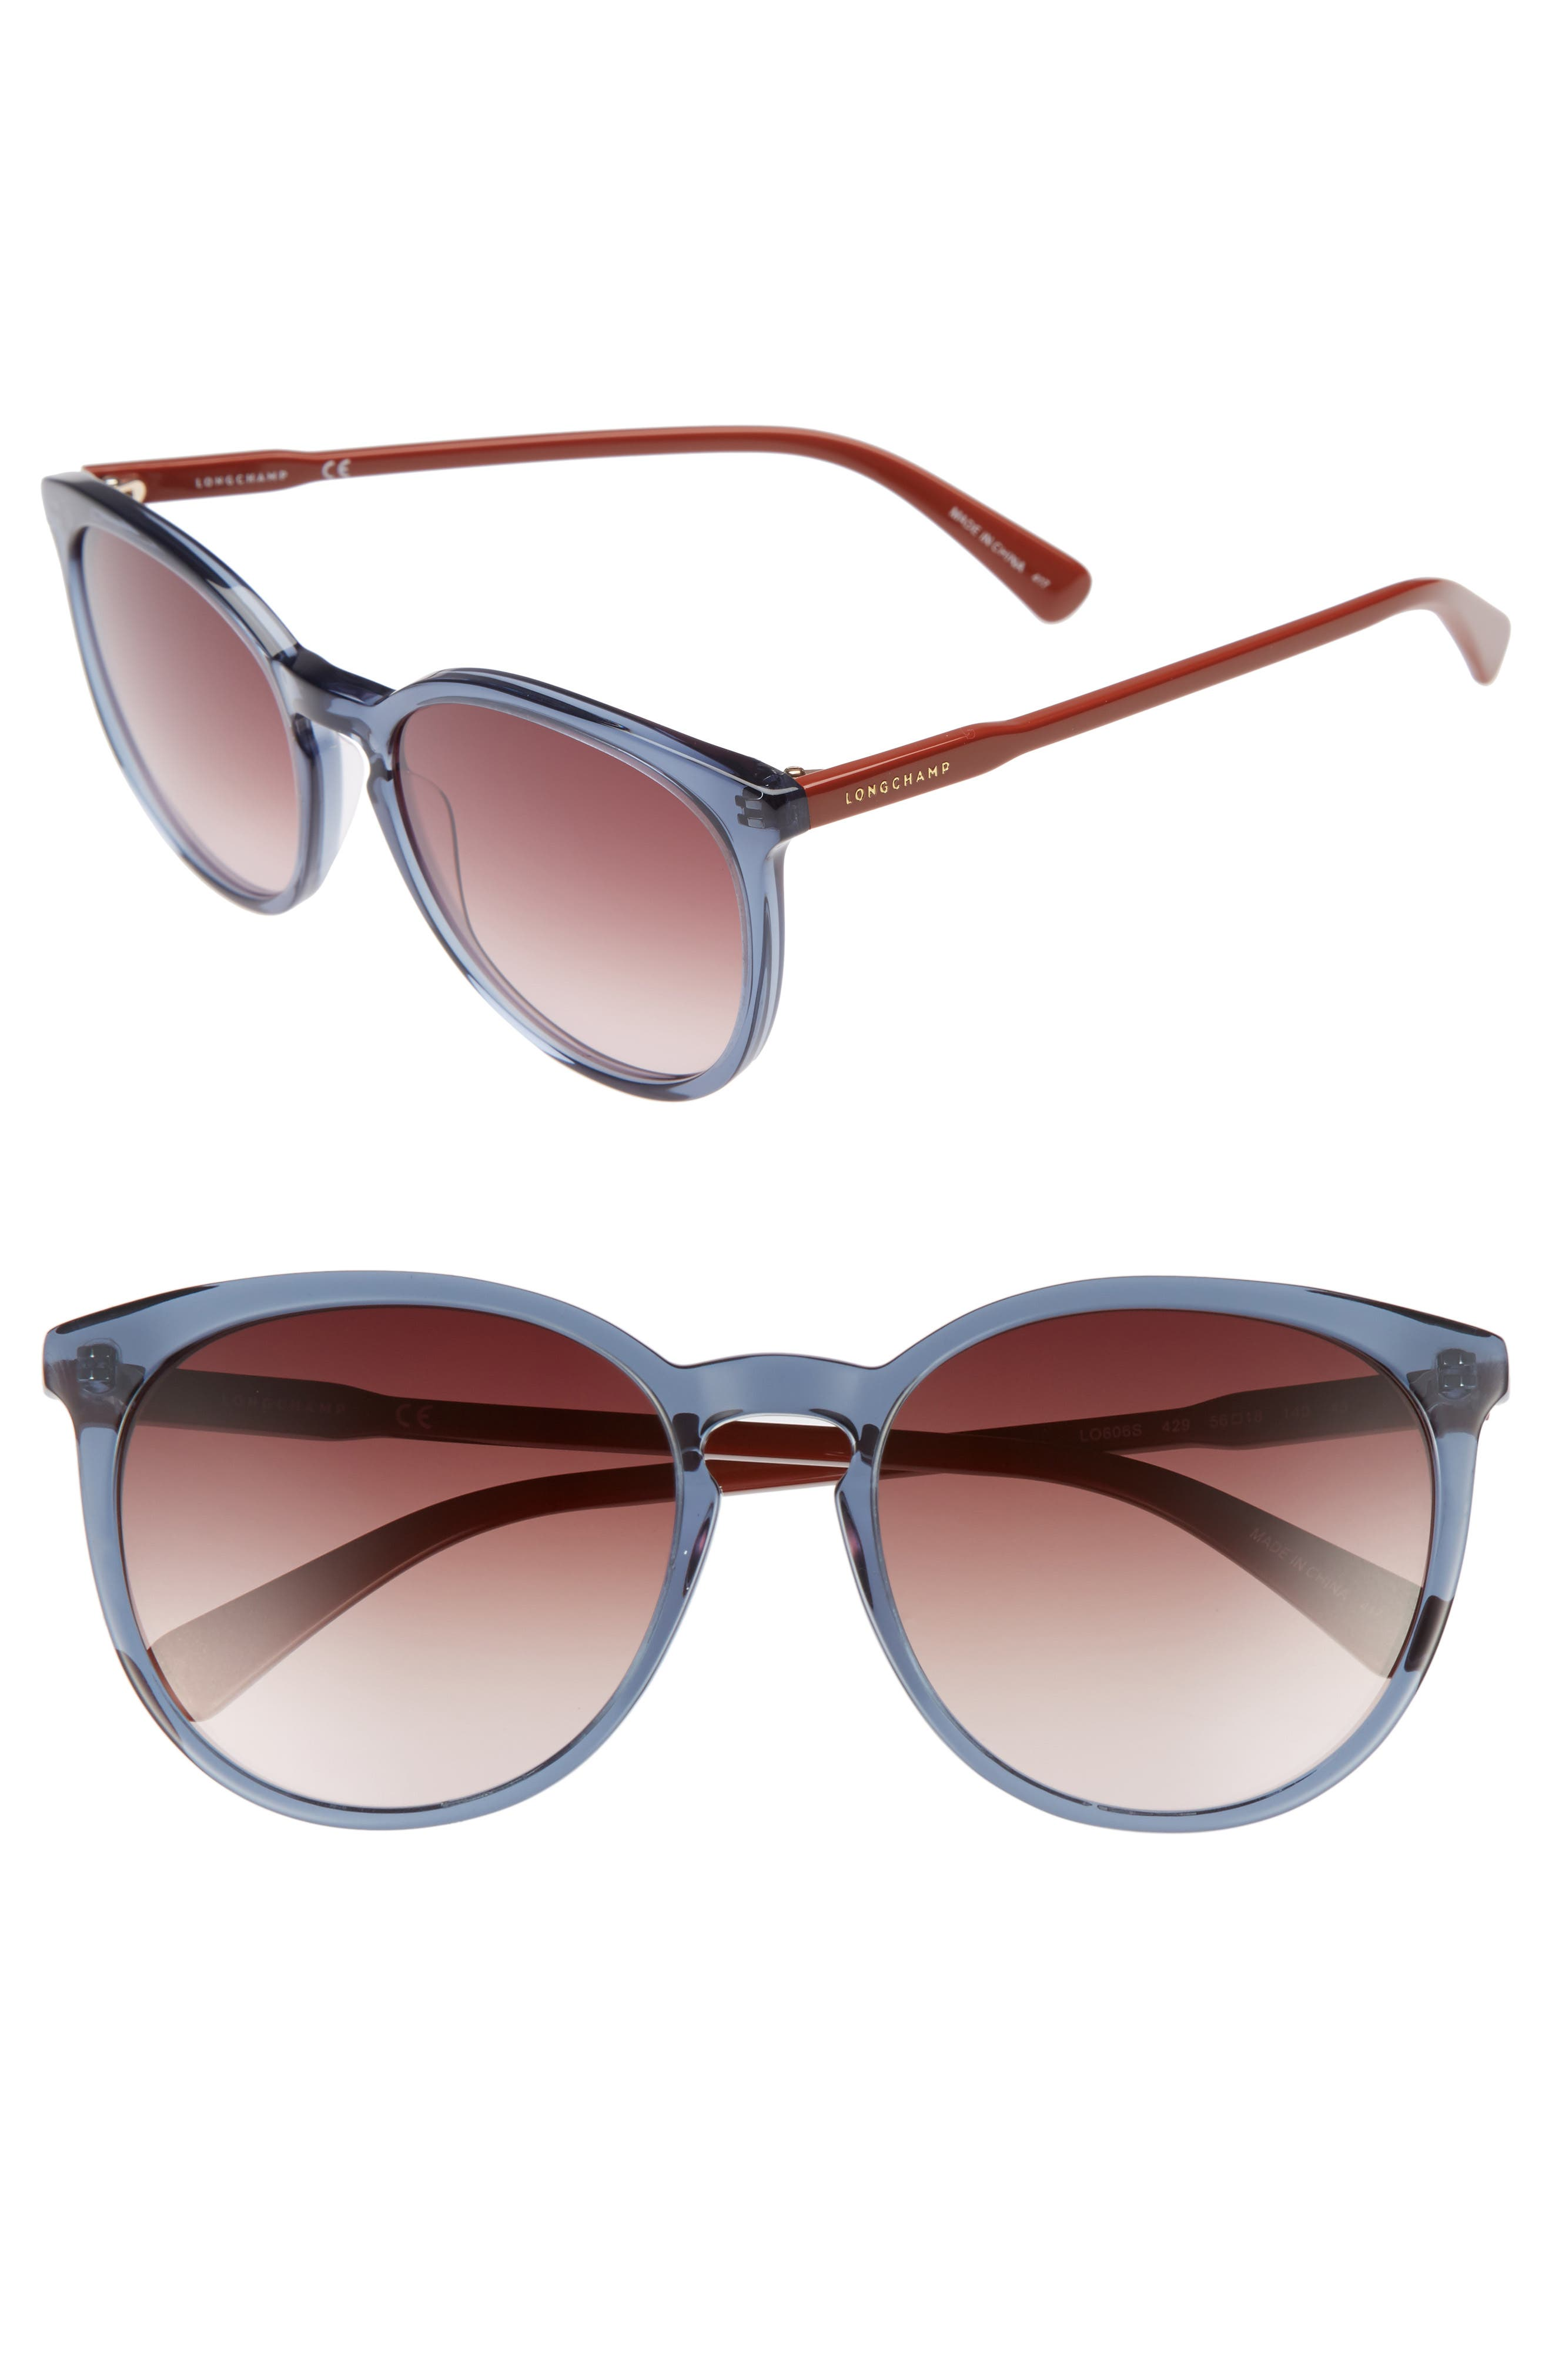 56mm Round Sunglasses,                         Main,                         color, Petrol Berry